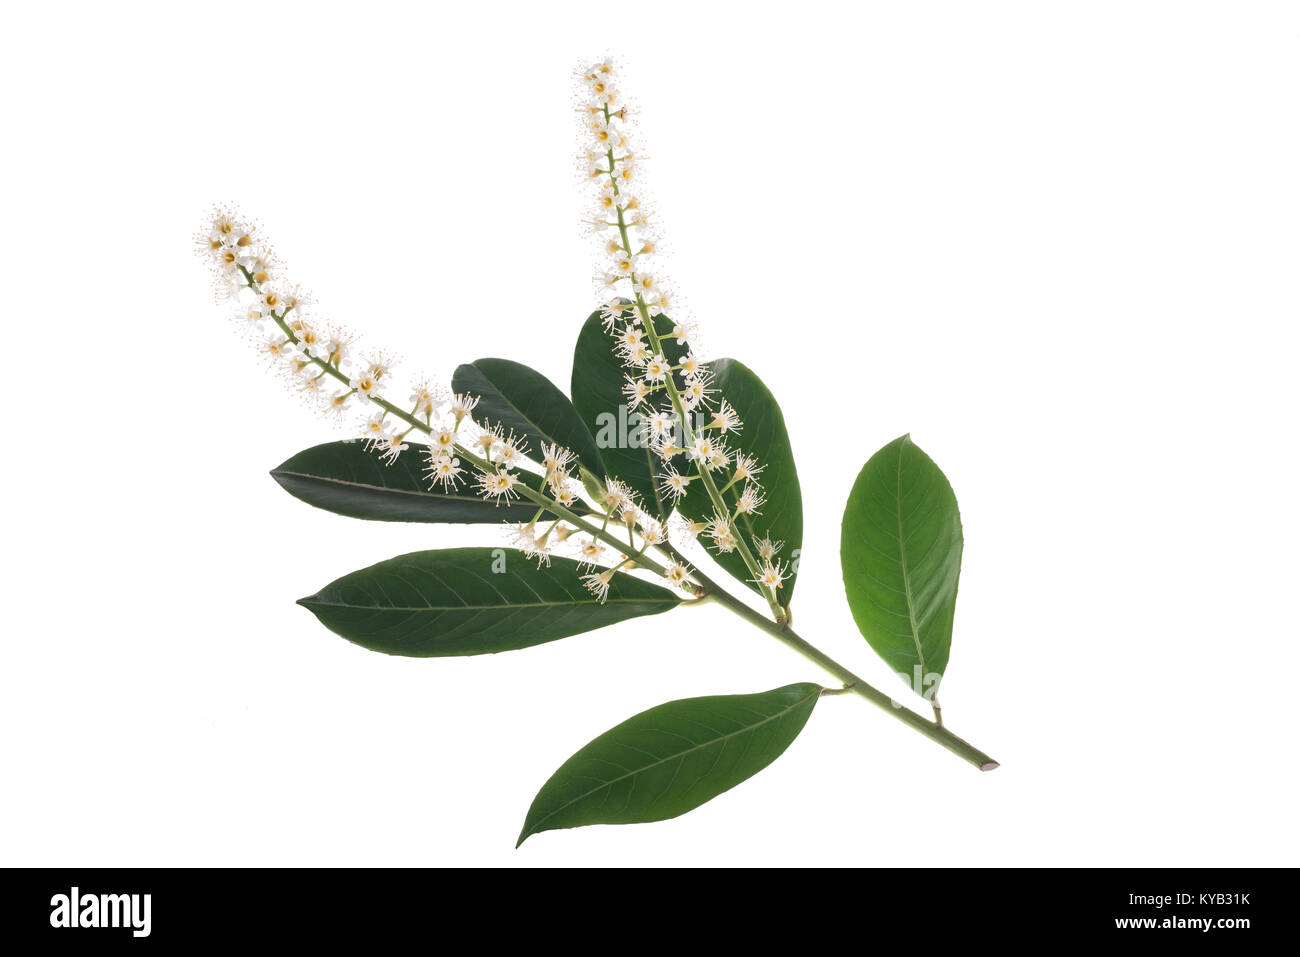 Prunus laurocerasus flowers isolated on white background Stock Photo